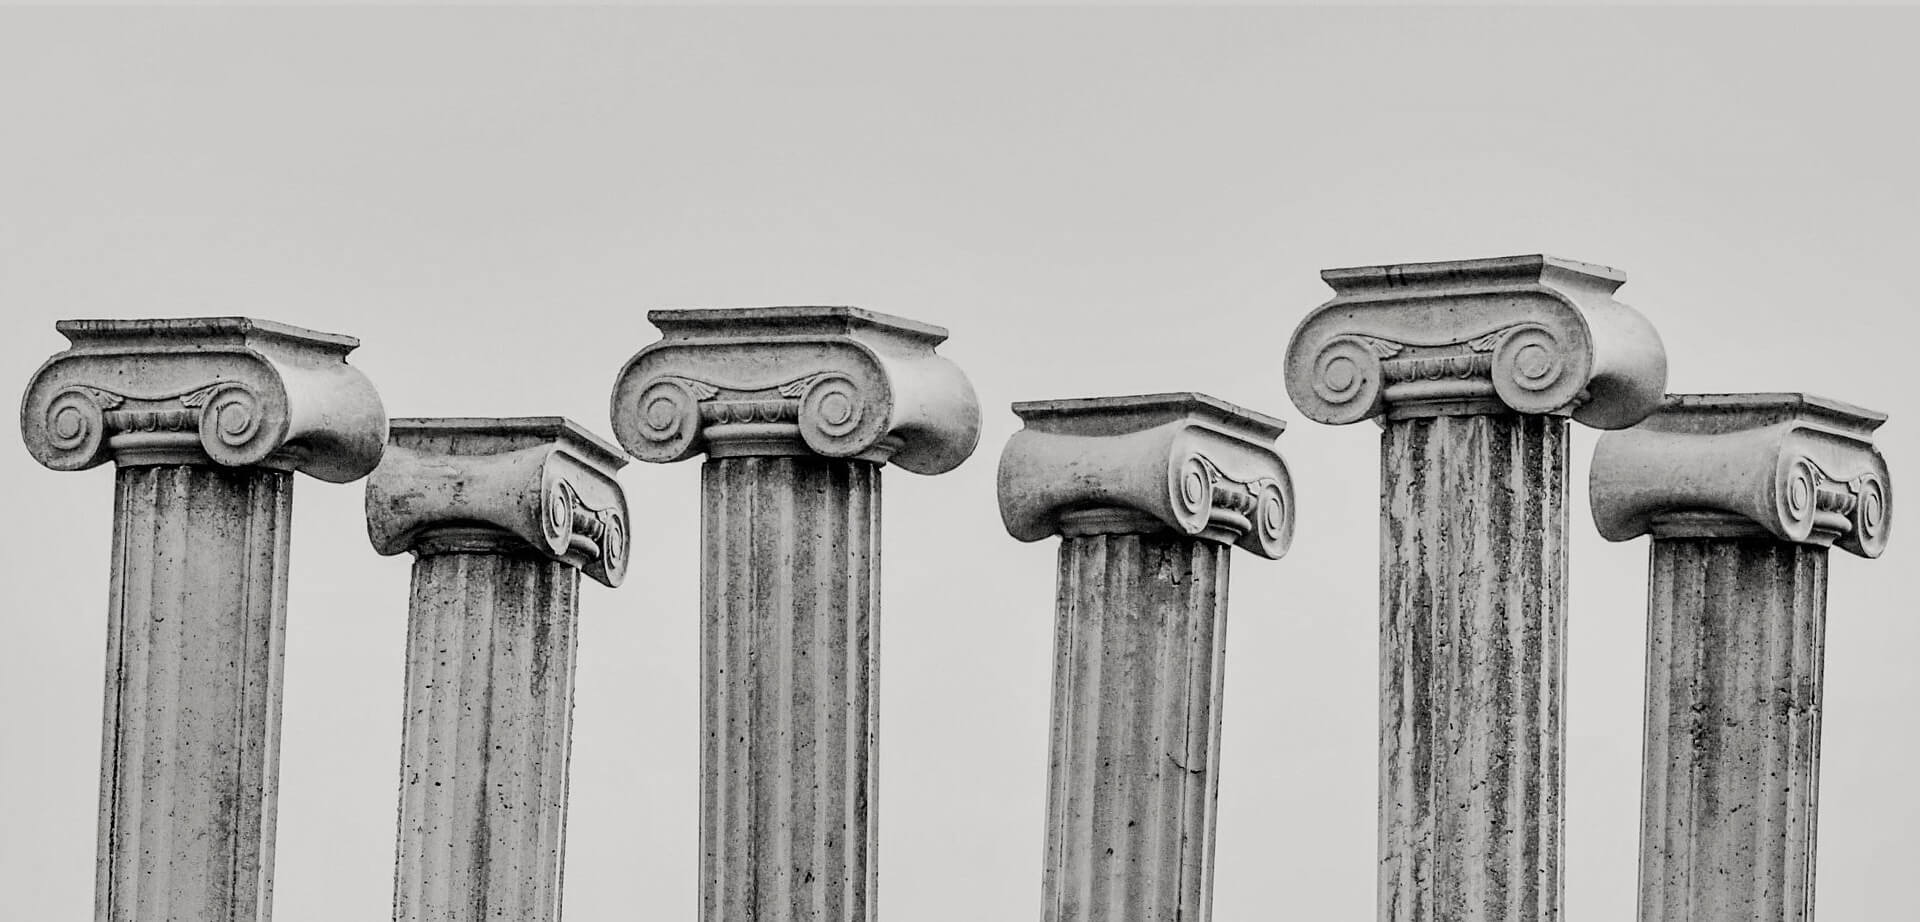 Six ionic pillars next to each other